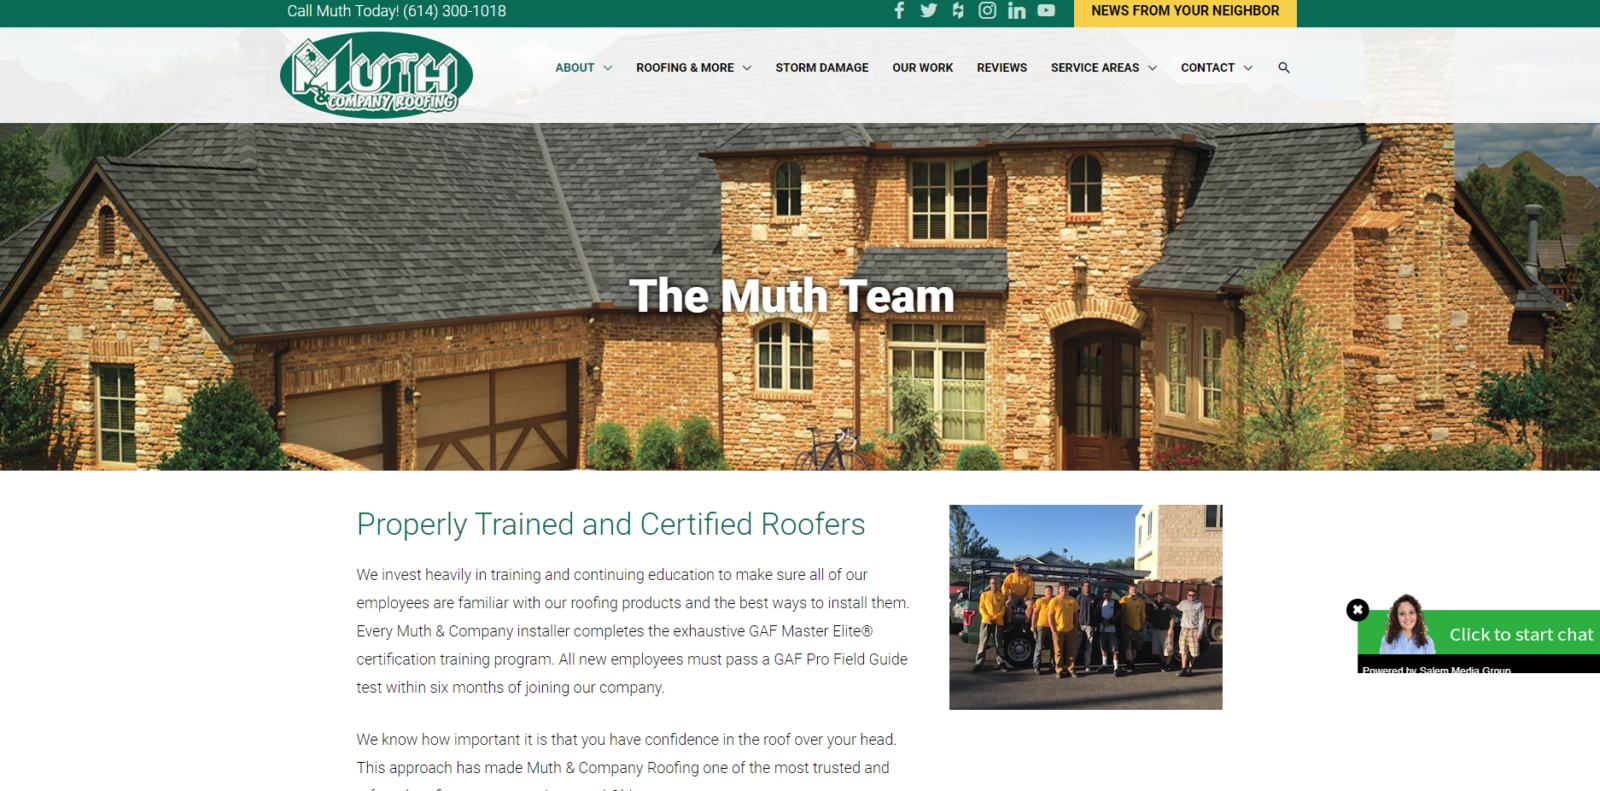 wordpress design and build muth & company our team